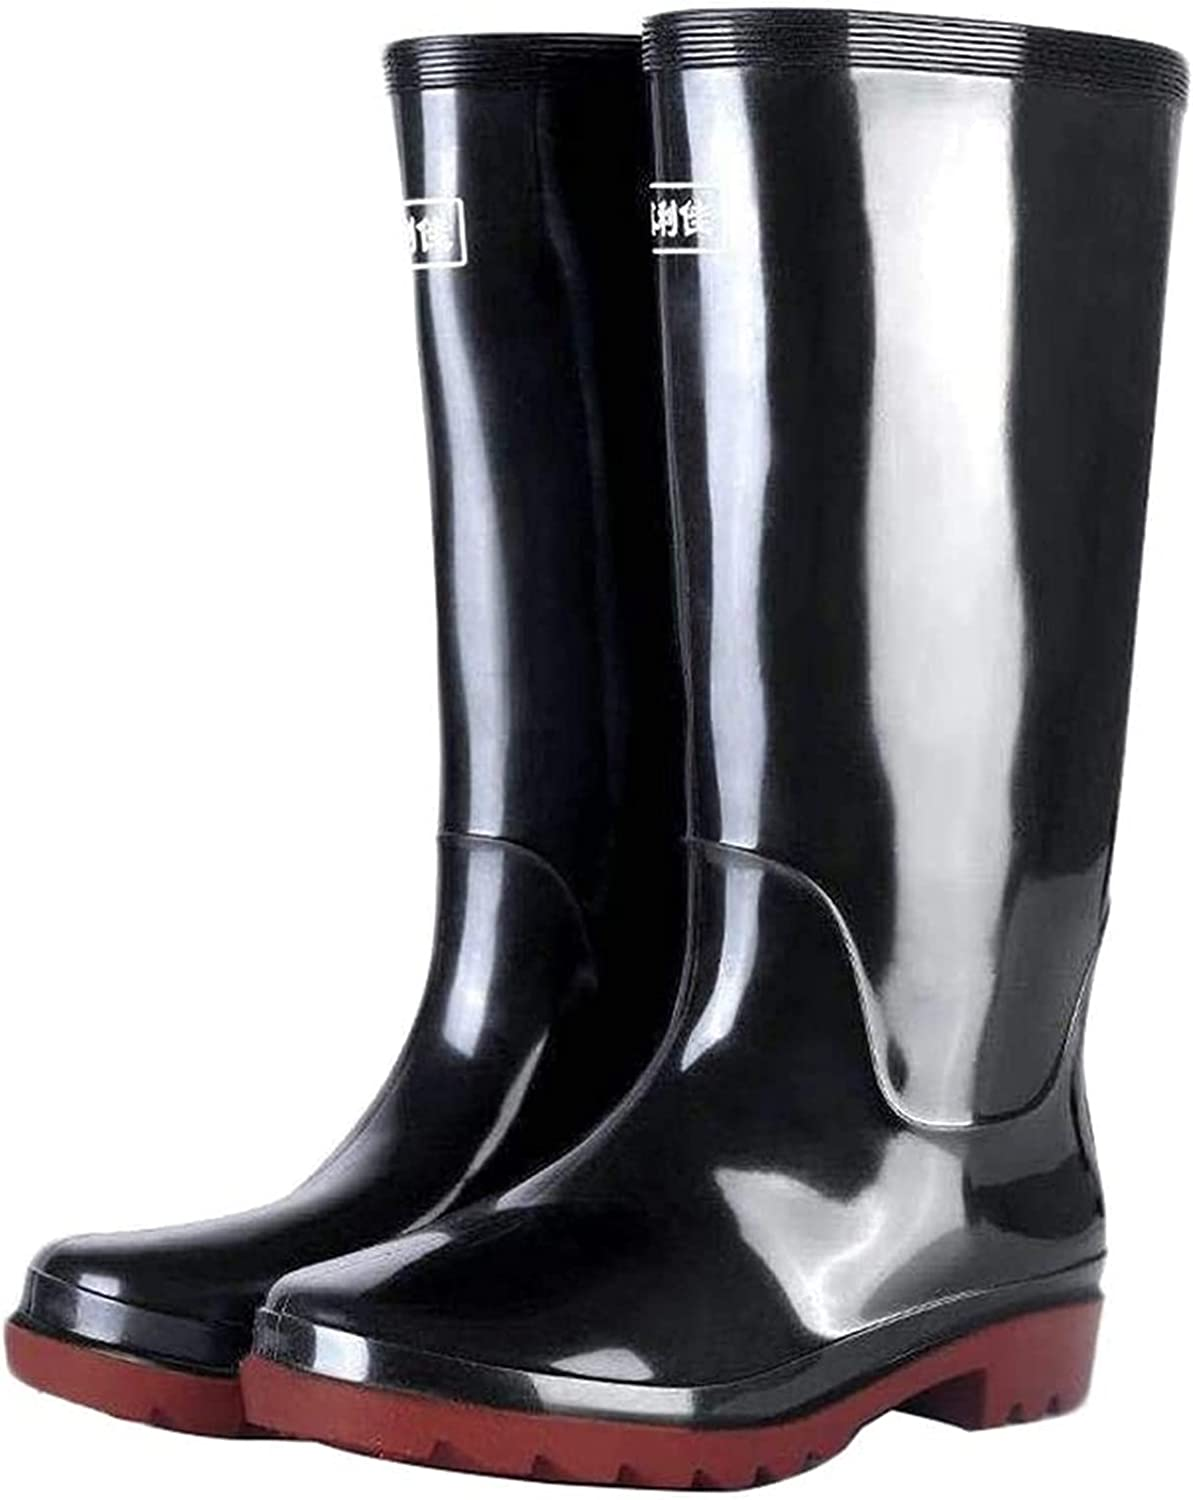 A surprise price is realized YUESFZ rain Boots Black Rain High-top Excellence Men's